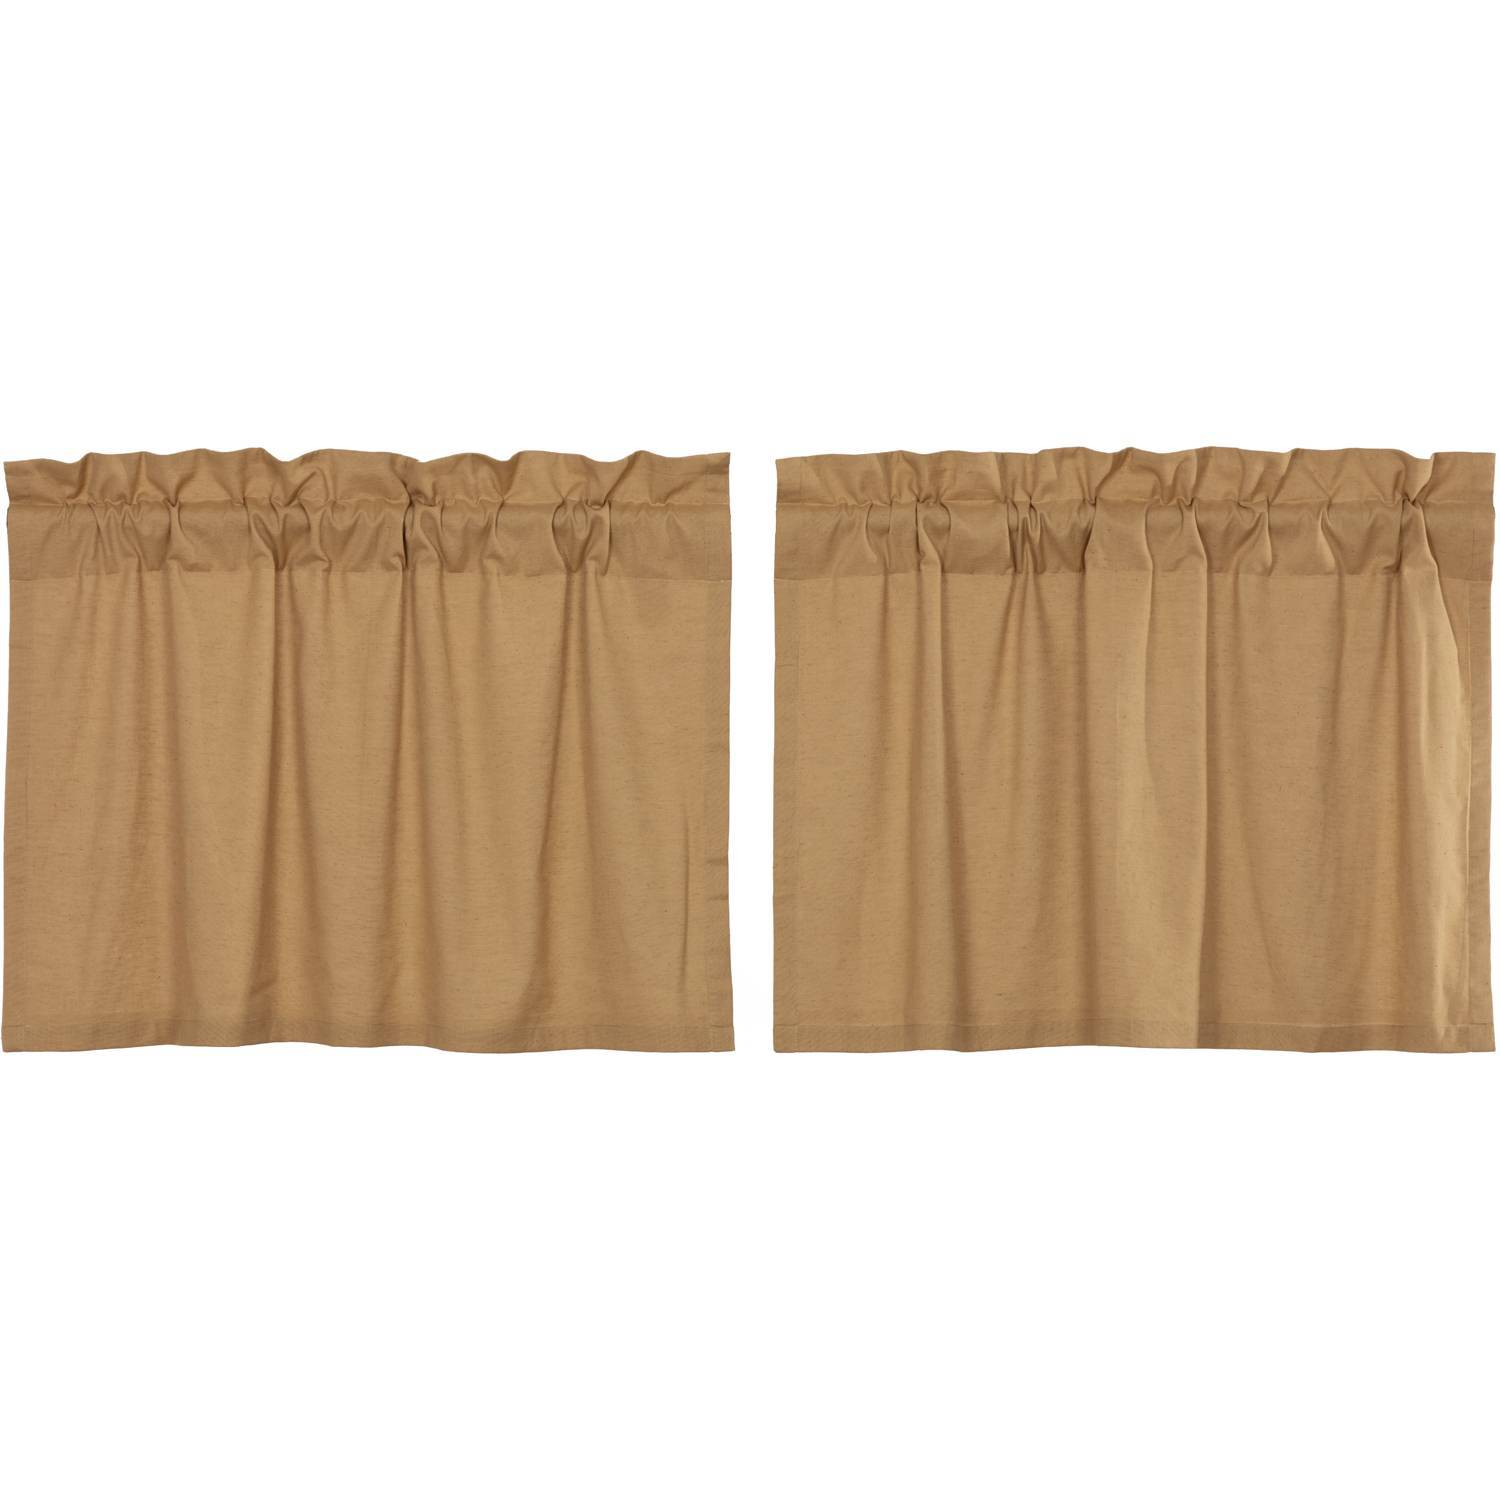 Simple Life Flax Khaki Tier Set Of 2 L24xw36 The Bitloom Co